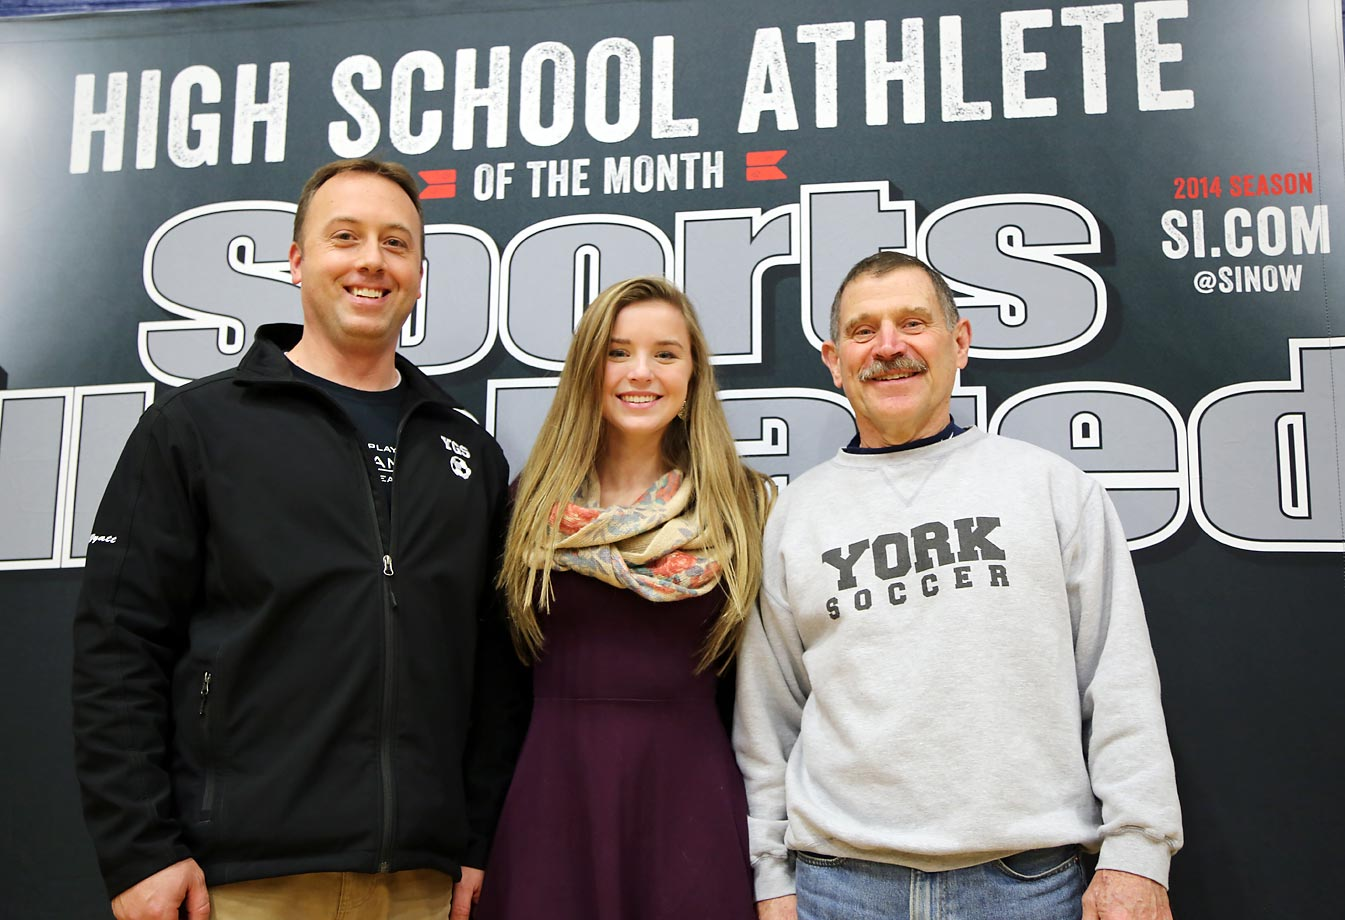 York High girls' soccer jayvee coach Kevin Wyatt (left) and varsity coach Walter Caldwell (right) pose with Kate.